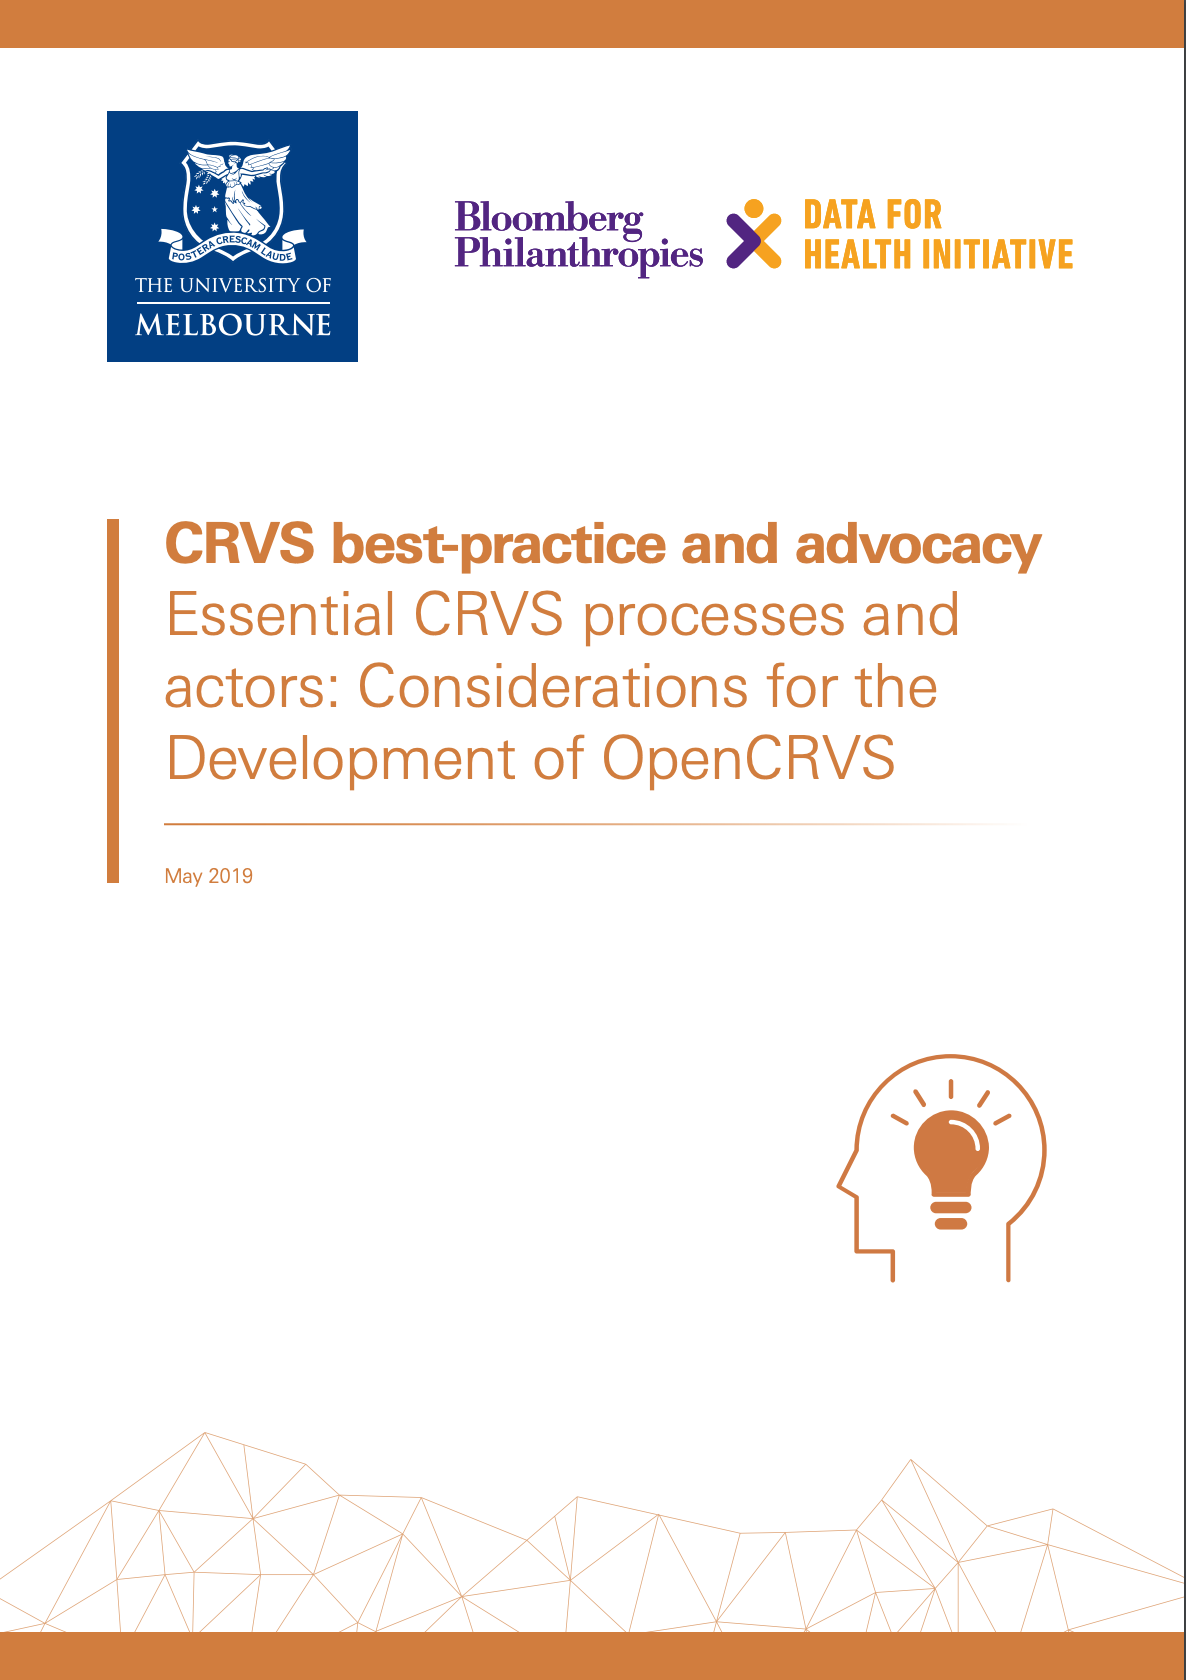 Essential CRVS processes and actors: Considerations for the Development of OpenCRVS thumbnail